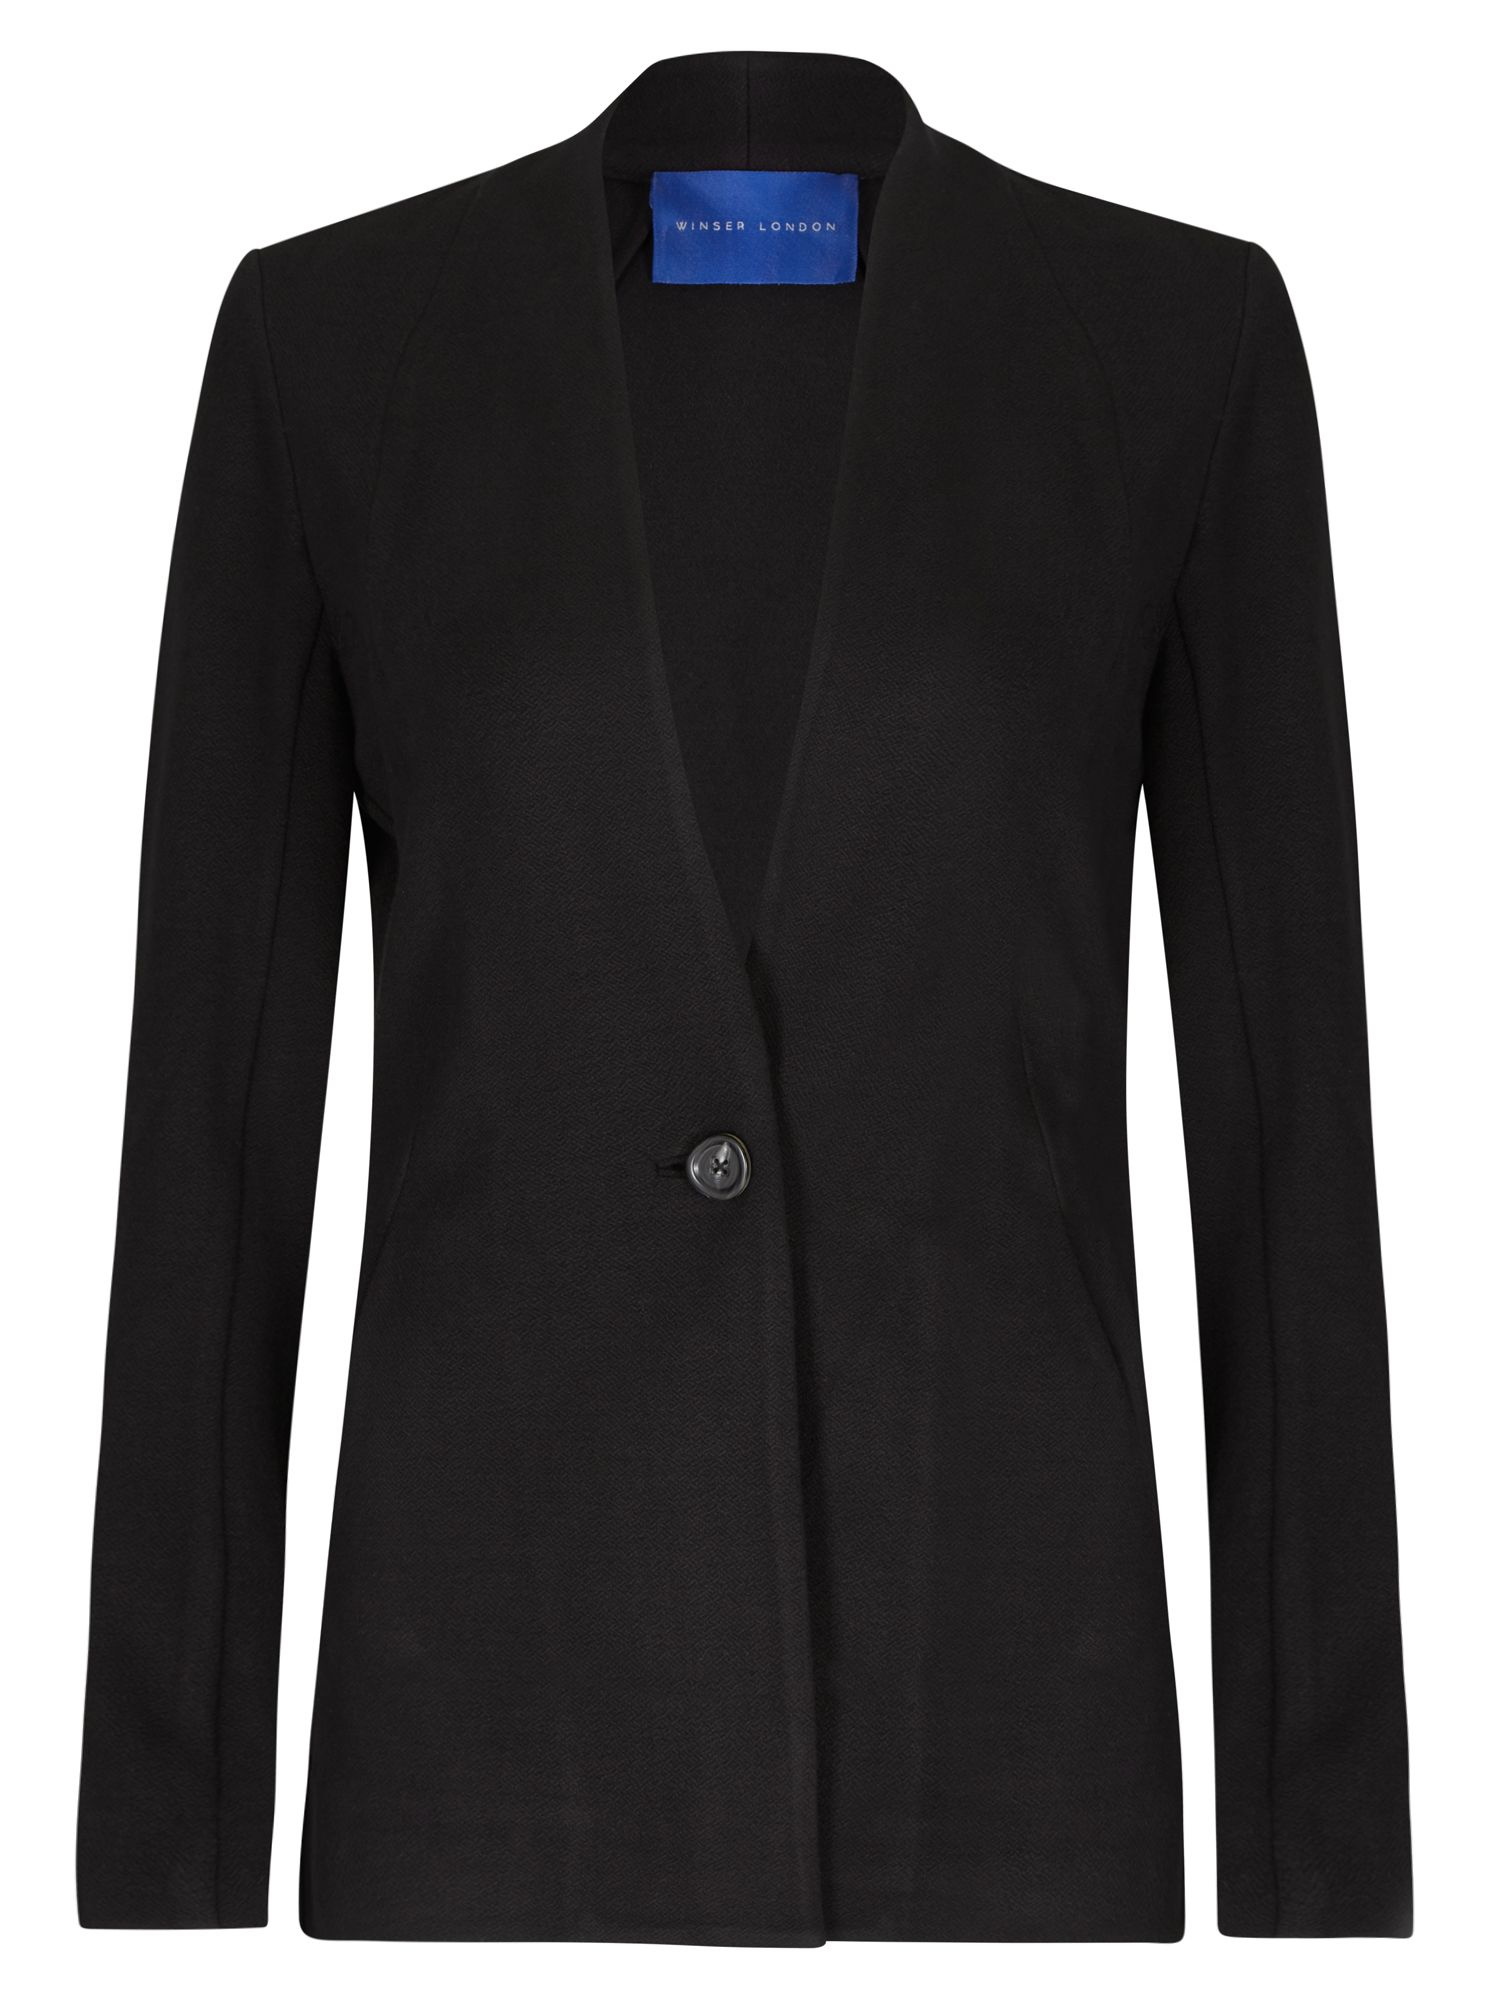 Winser London Crepe Jersey Jacket, Black